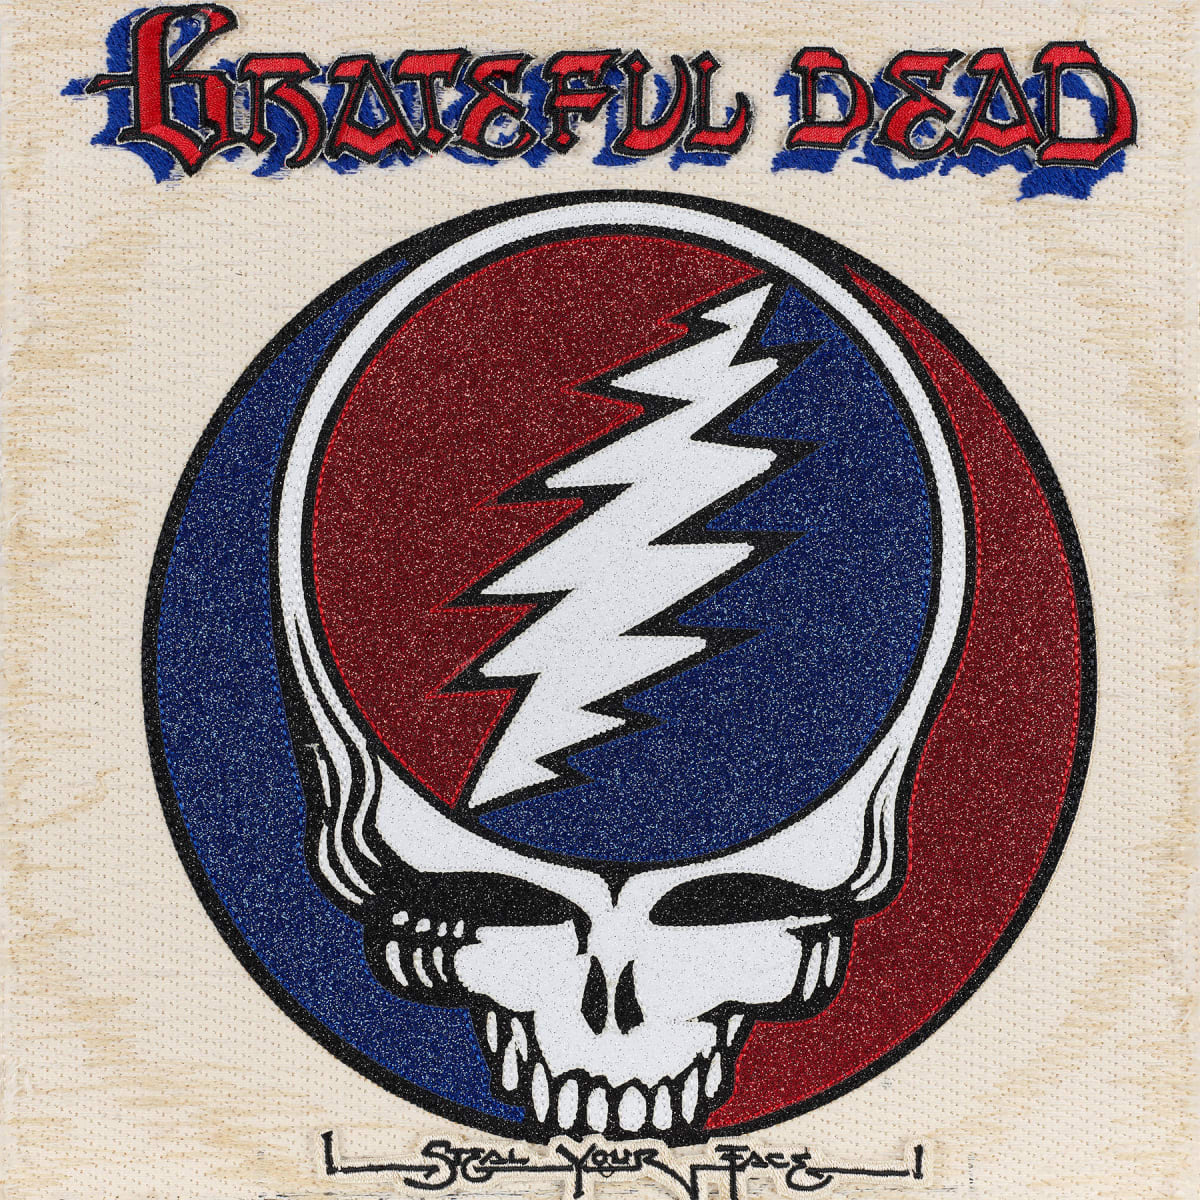 Stephen Wilson, Steal Your Face, The Grateful Dead, 2019